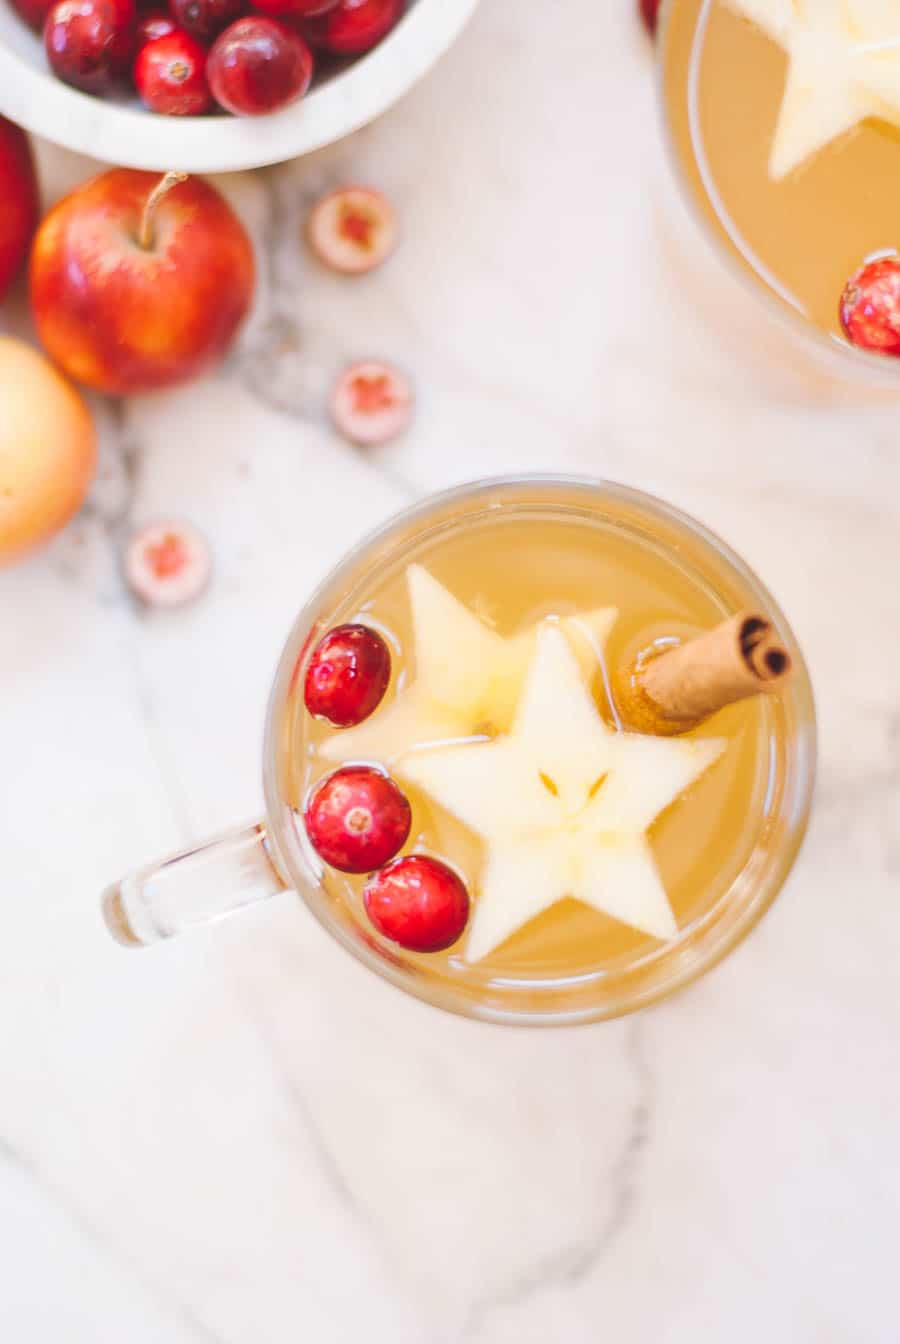 Cider in a mug with star decorations